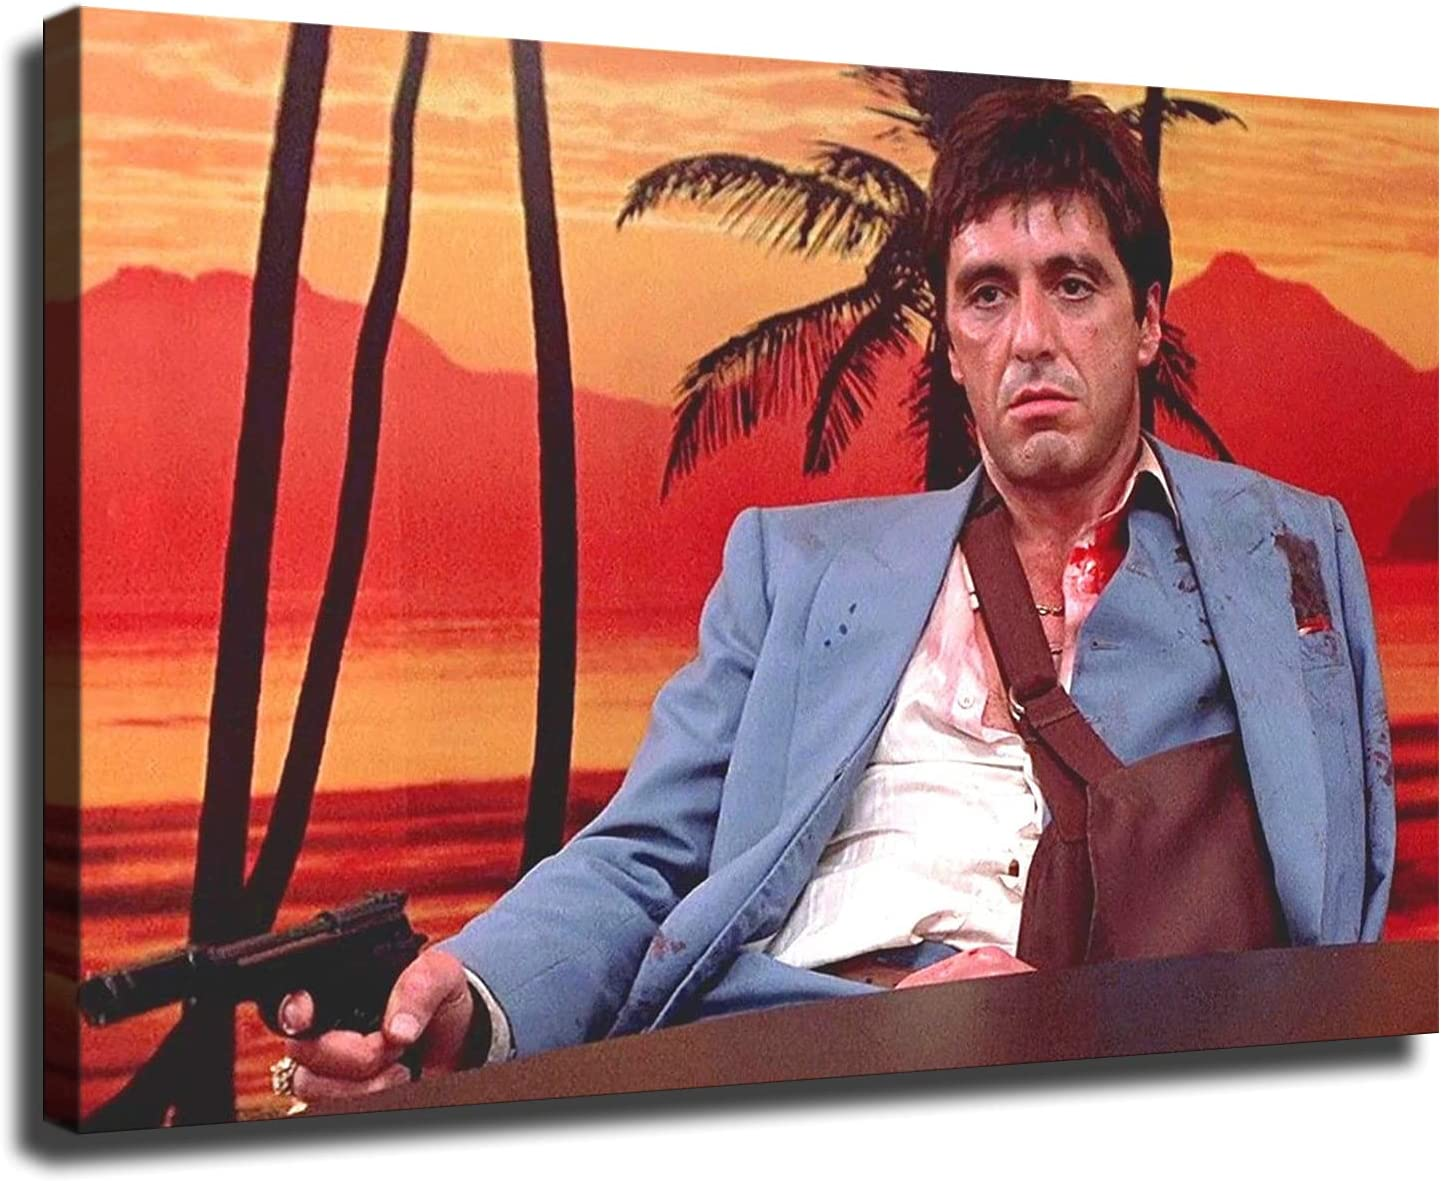 Mafia Scarface Godfather Casino Gangster Poster Picture Art Print Canvas Wall Art Home Living Room Bedroom Decor Mural (16×24inch-Framed)